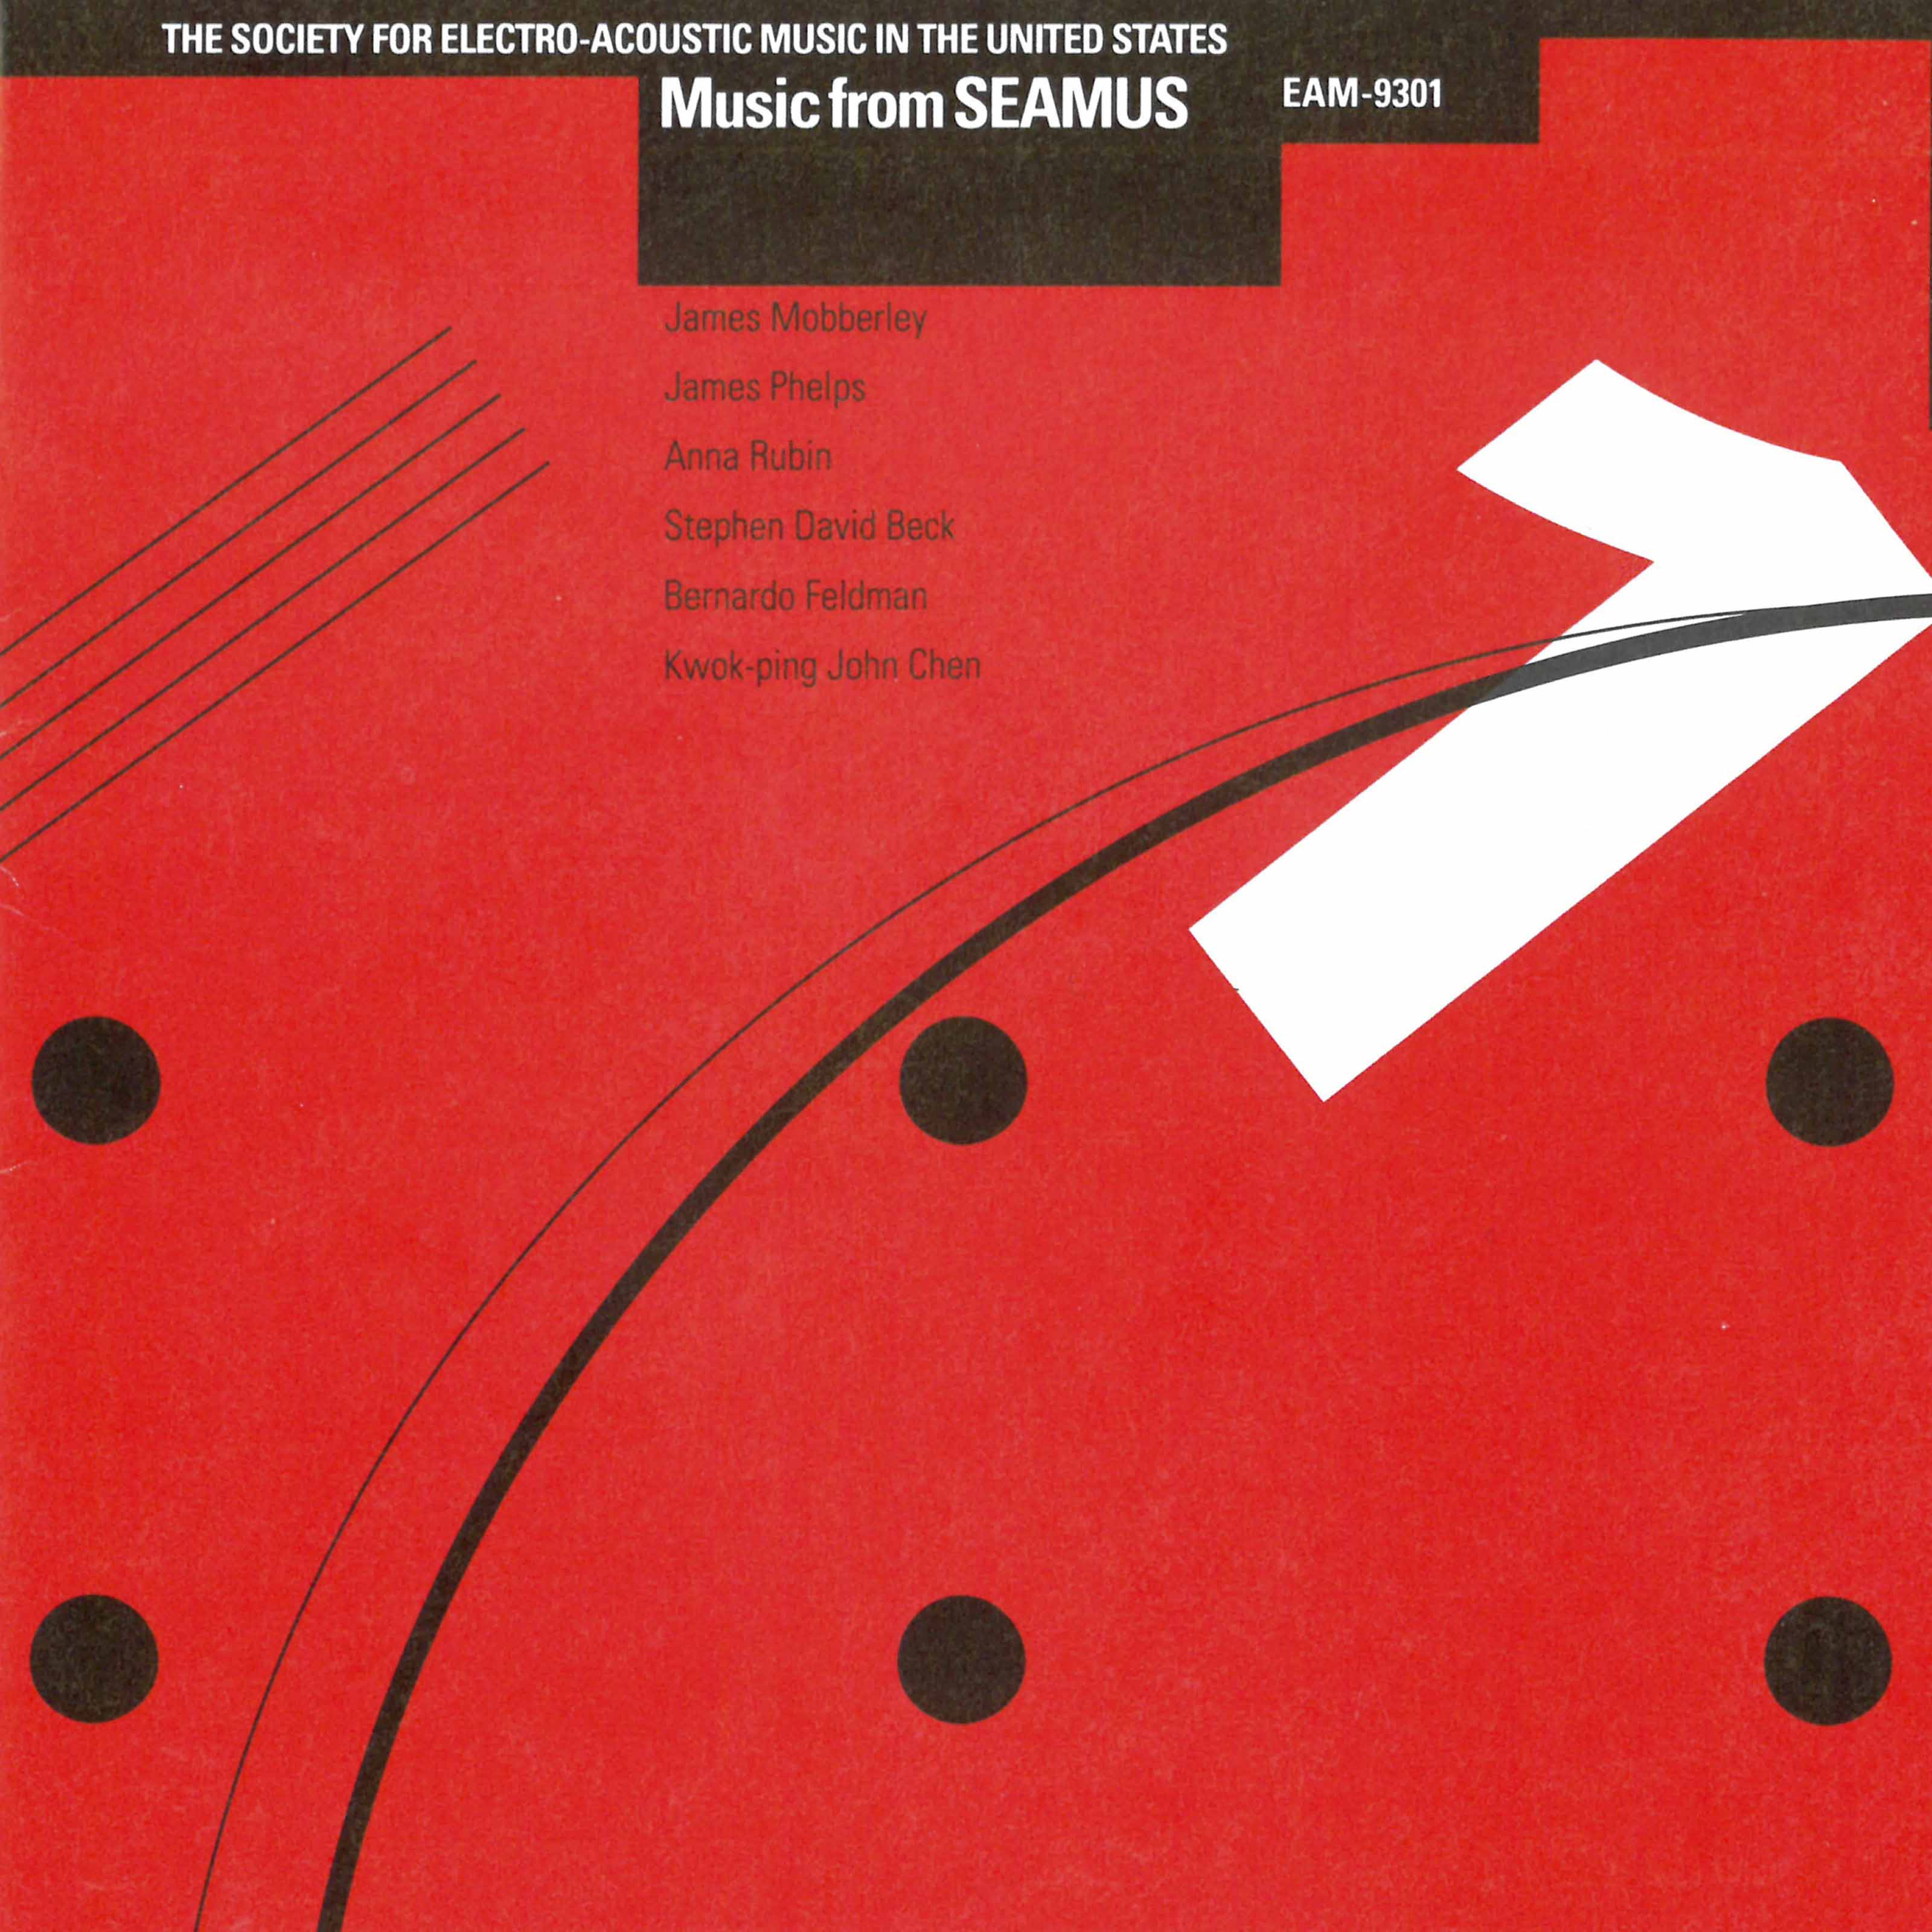 Music from SEAMUS, Vol. 1